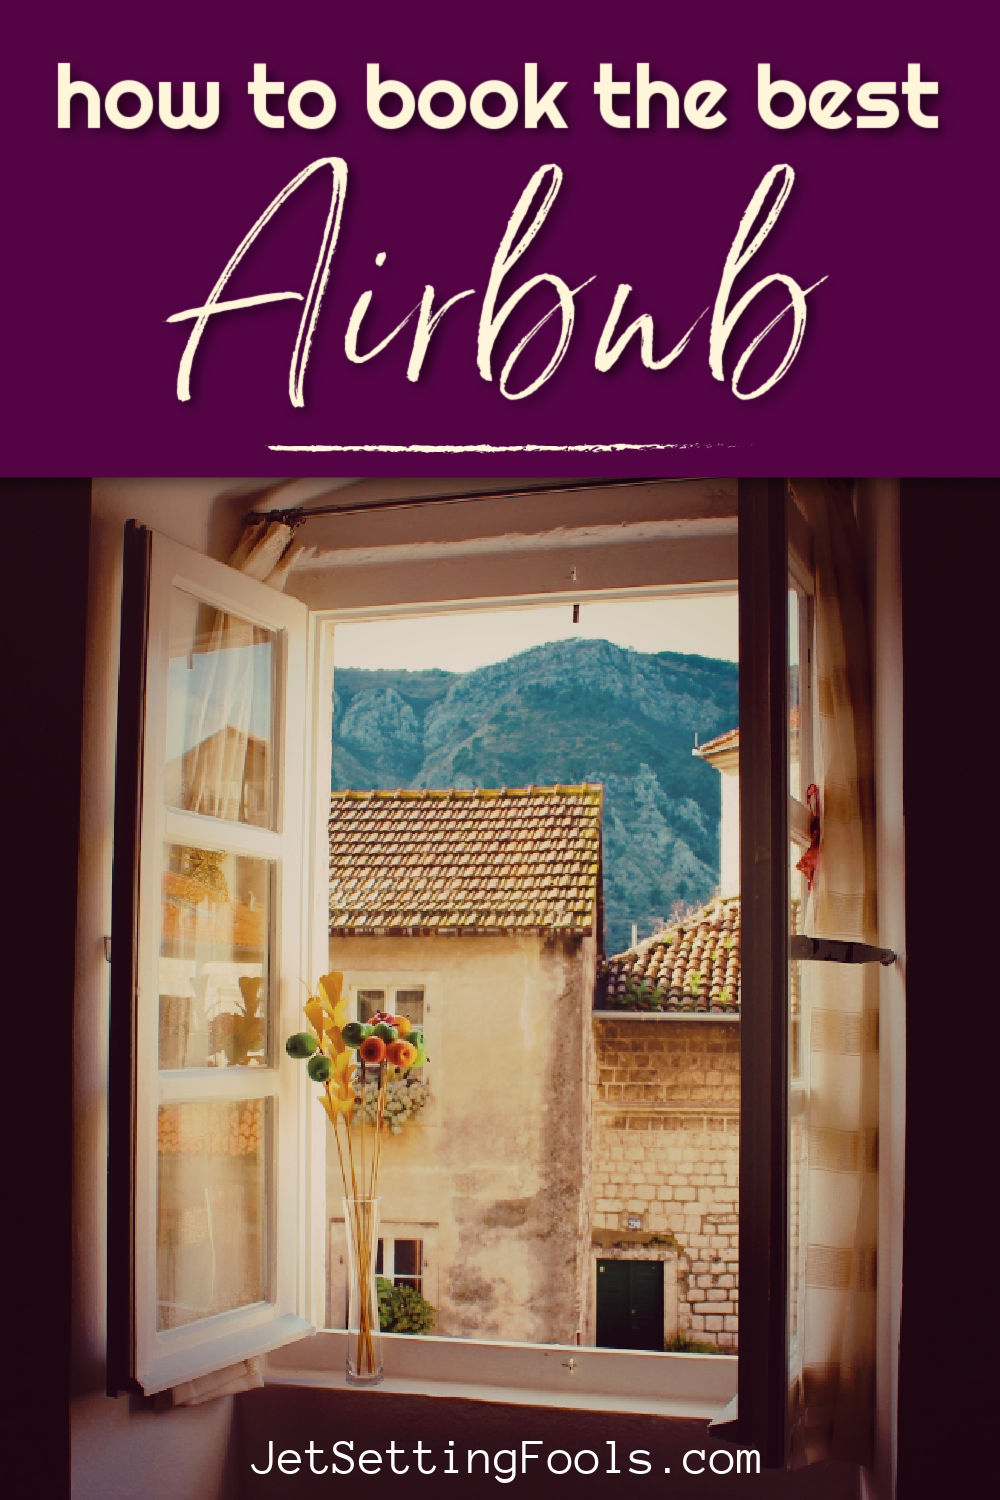 How To Book the Best Airbnb by JetSettingFools.com